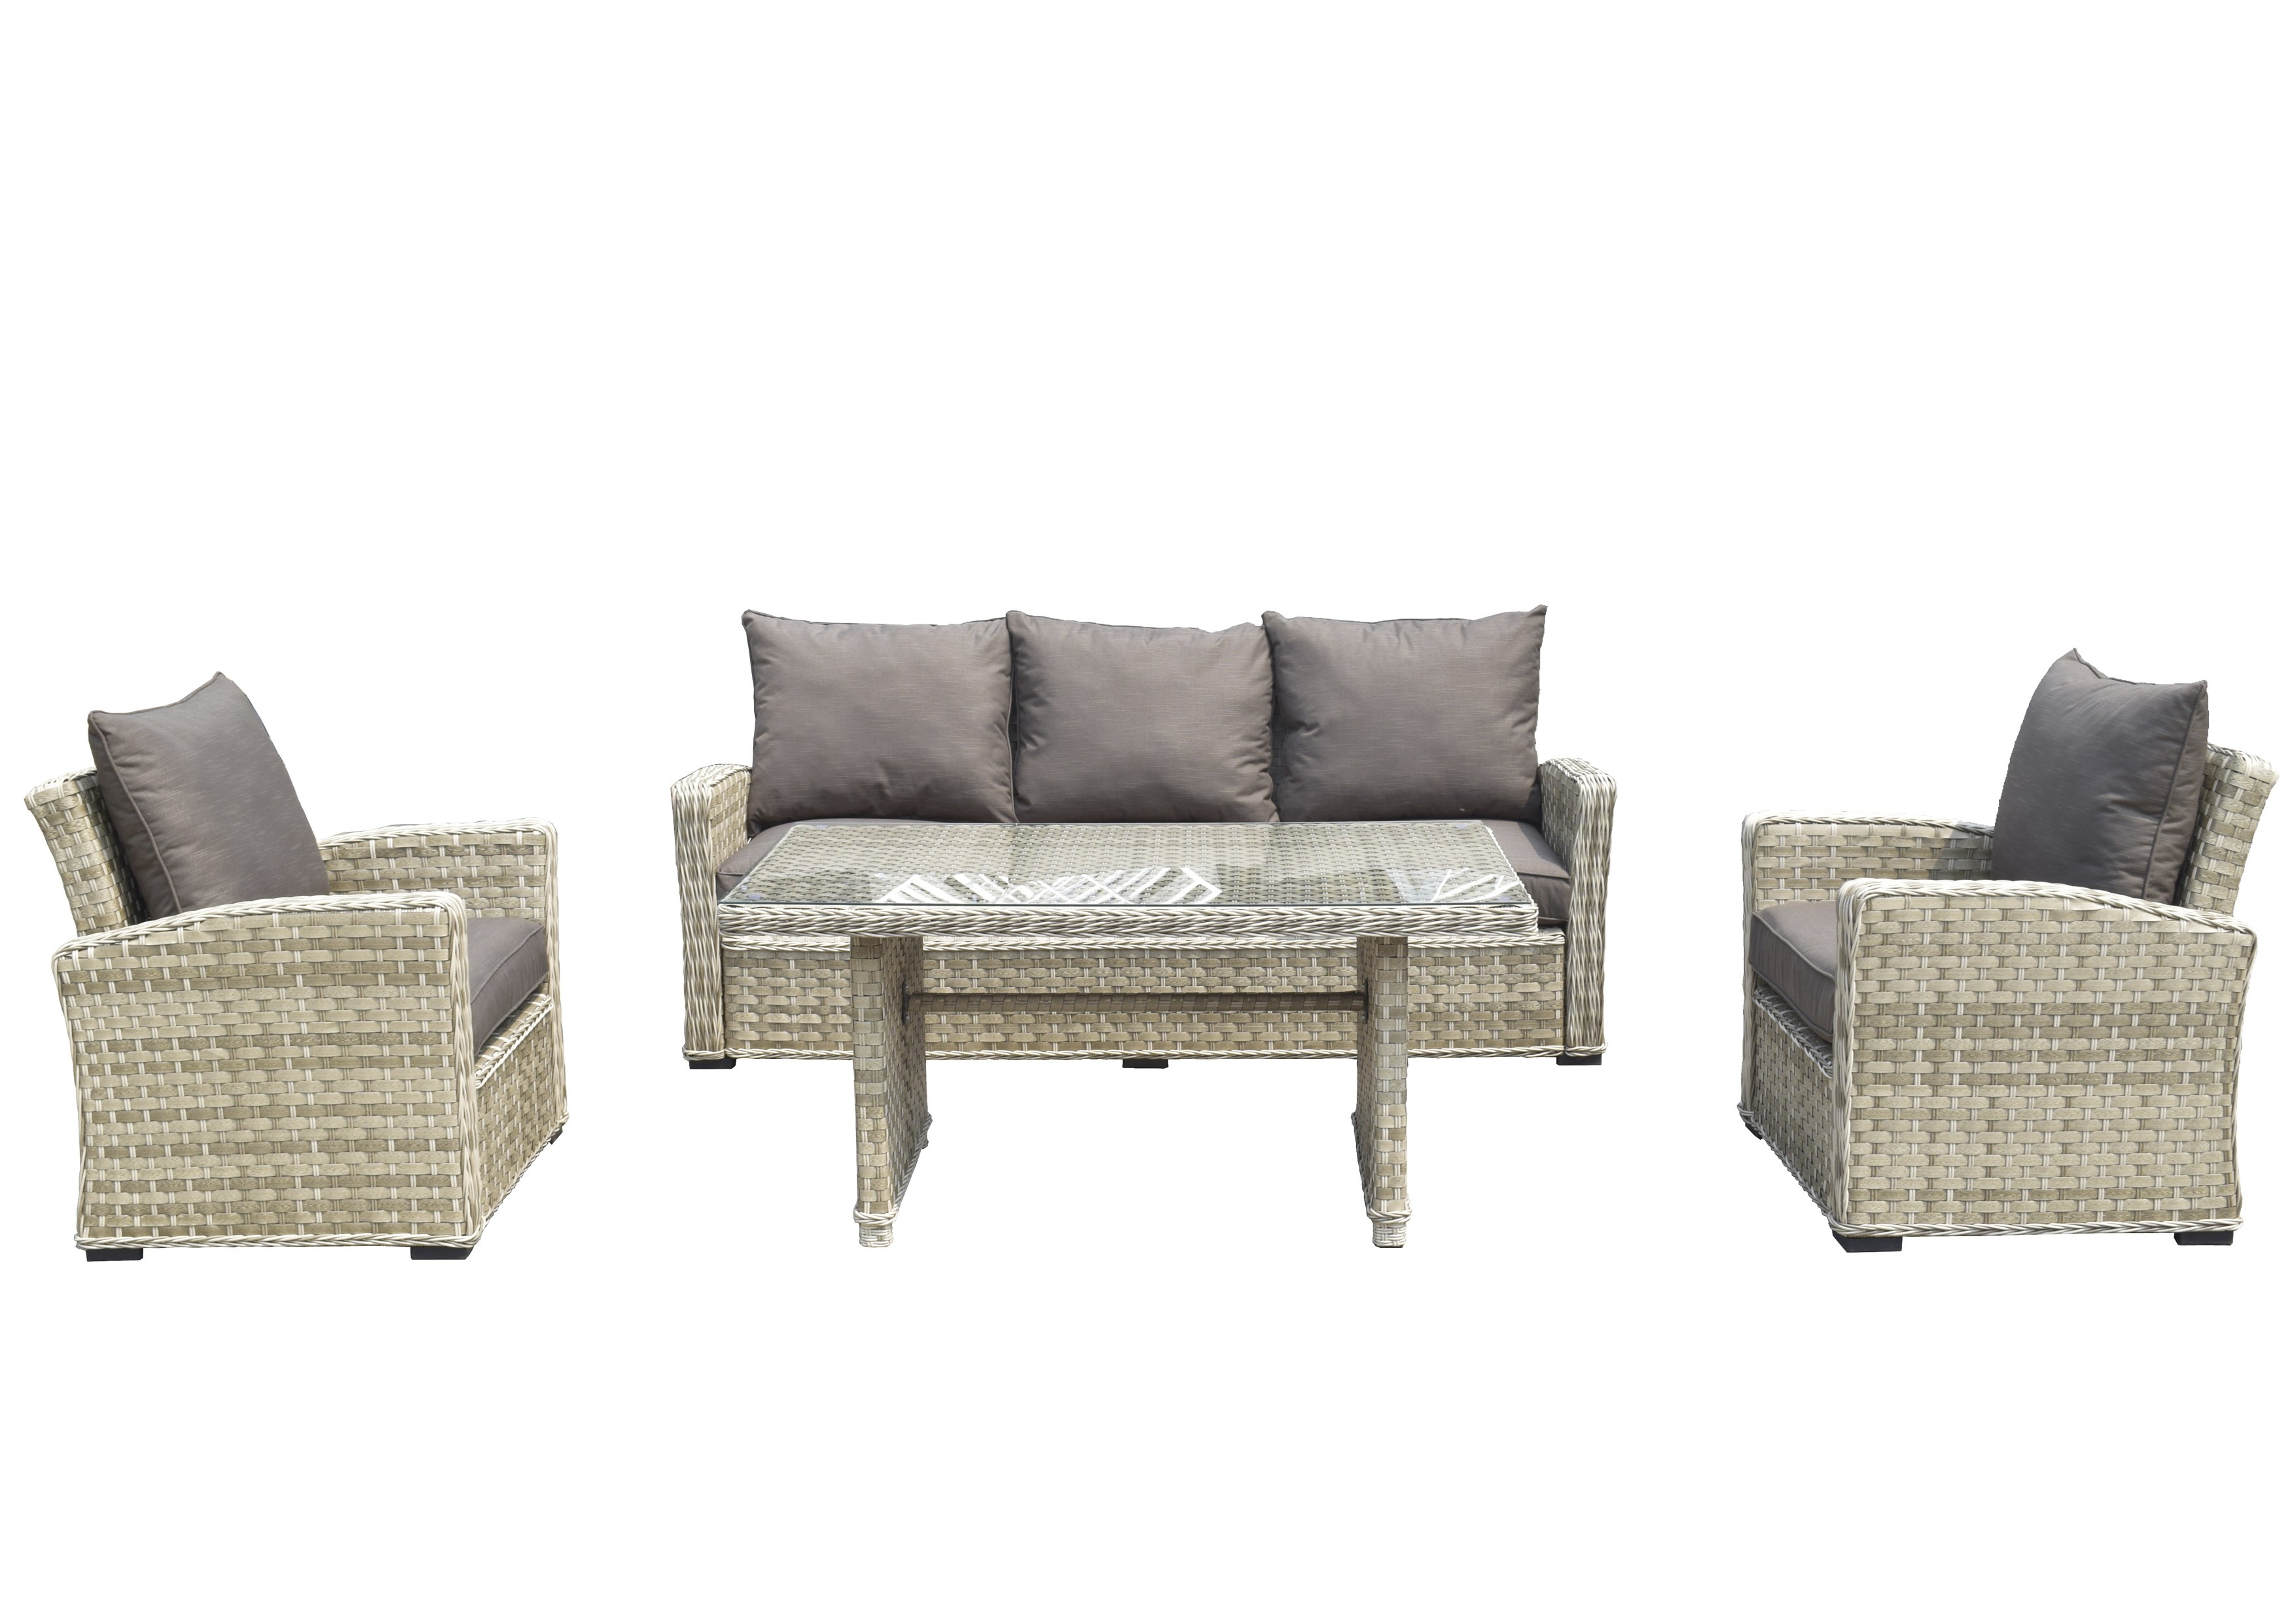 Furniture For Modern Living – Furniture For Modern Living Regarding Grace Sofa Chairs (Photo 16 of 20)